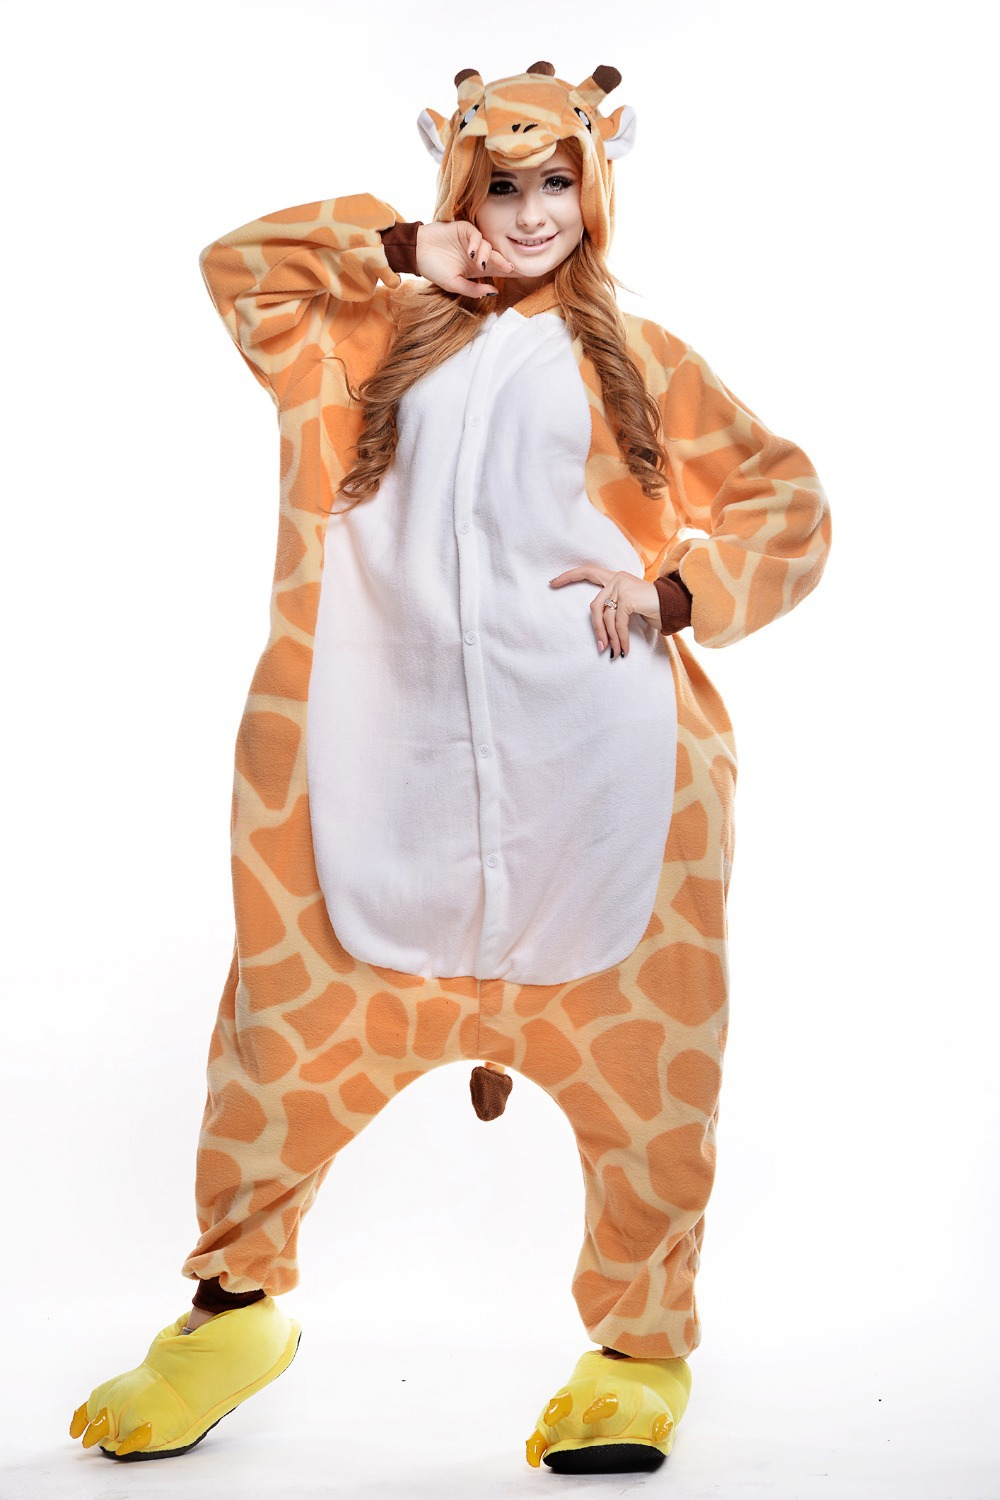 Adult-Giraffe-Onesie-Adult-Animal-Footed-Pajamas -Plus-Size-Polar-Fleece-Halloween-Costumes-for-Women-Carnival.jpg